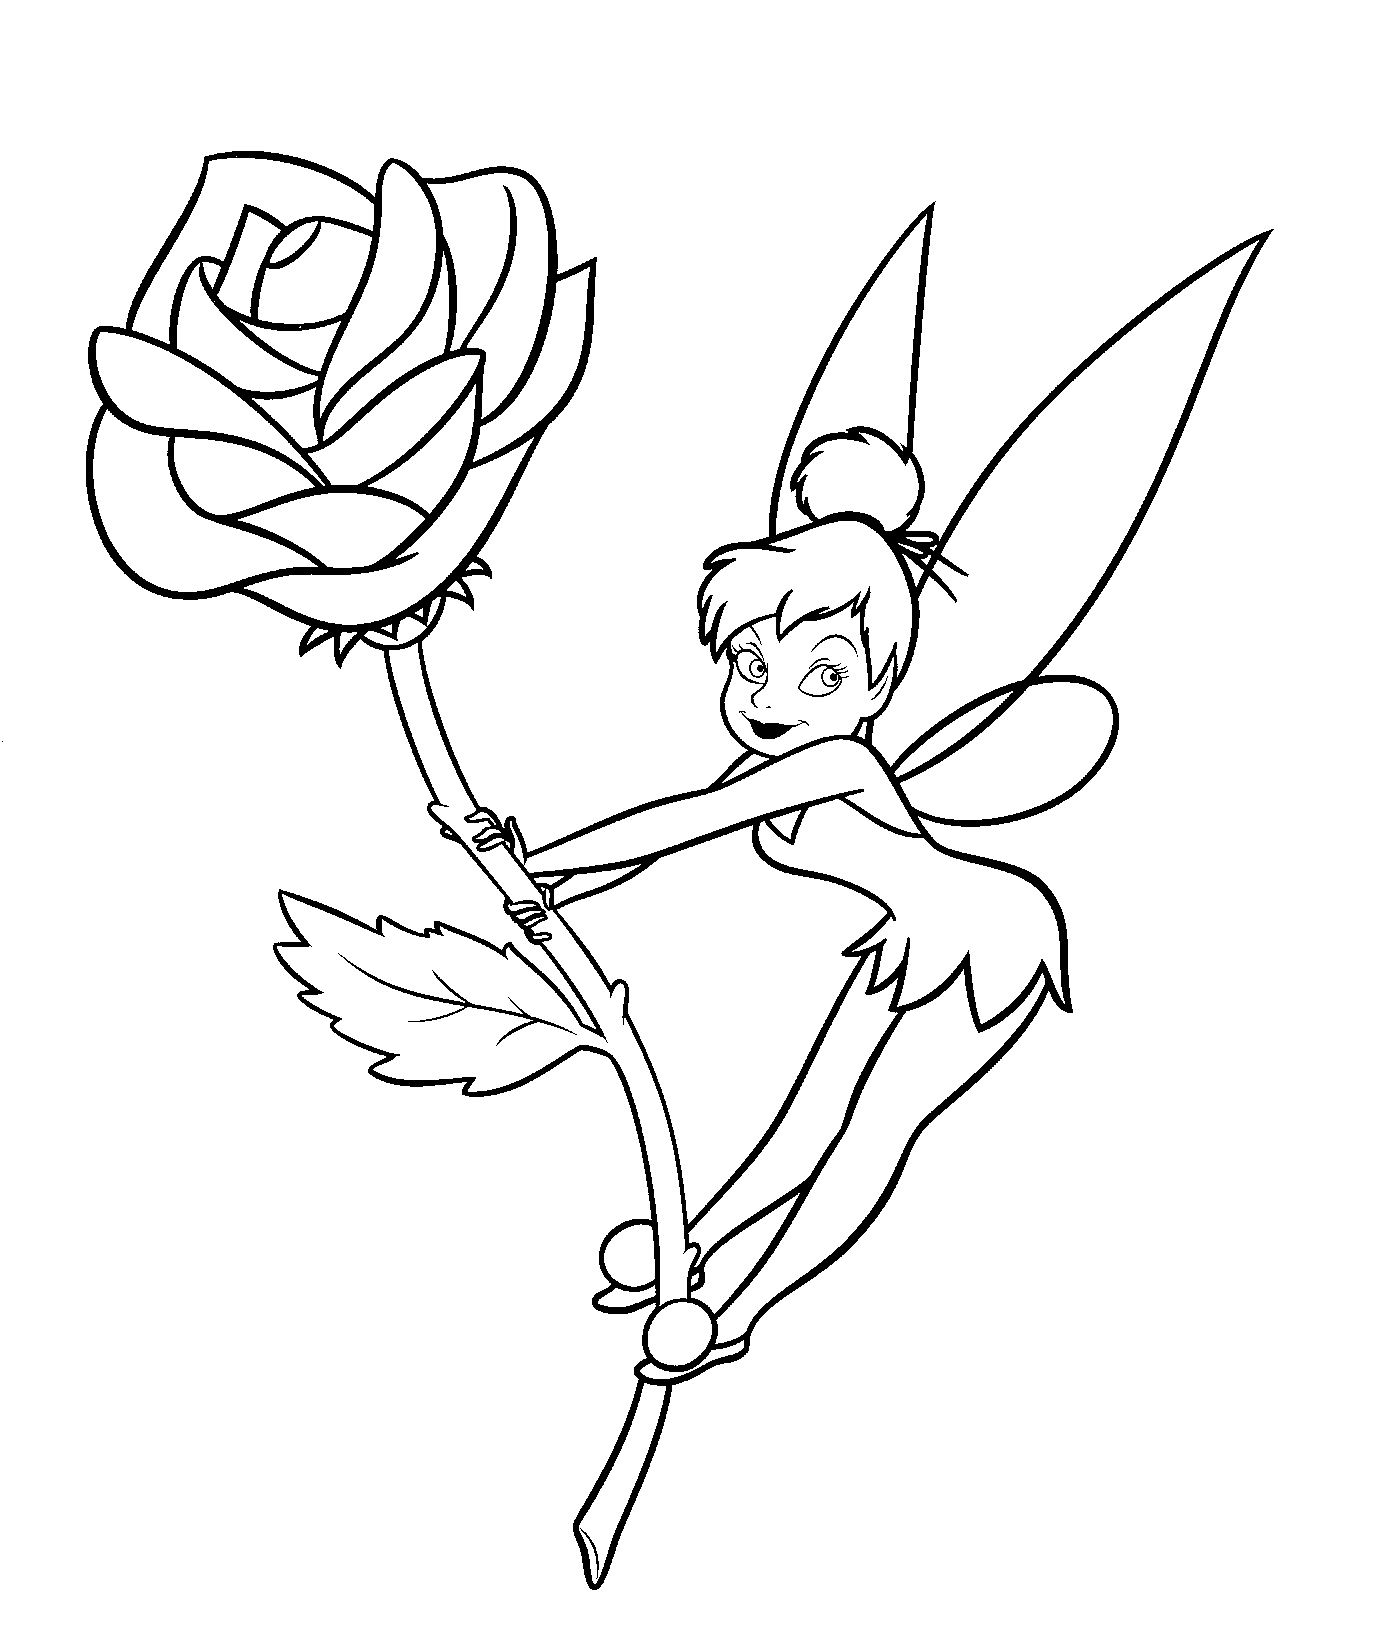 tinkerbell for coloring tinkerbell coloring pages tinkerbell for coloring